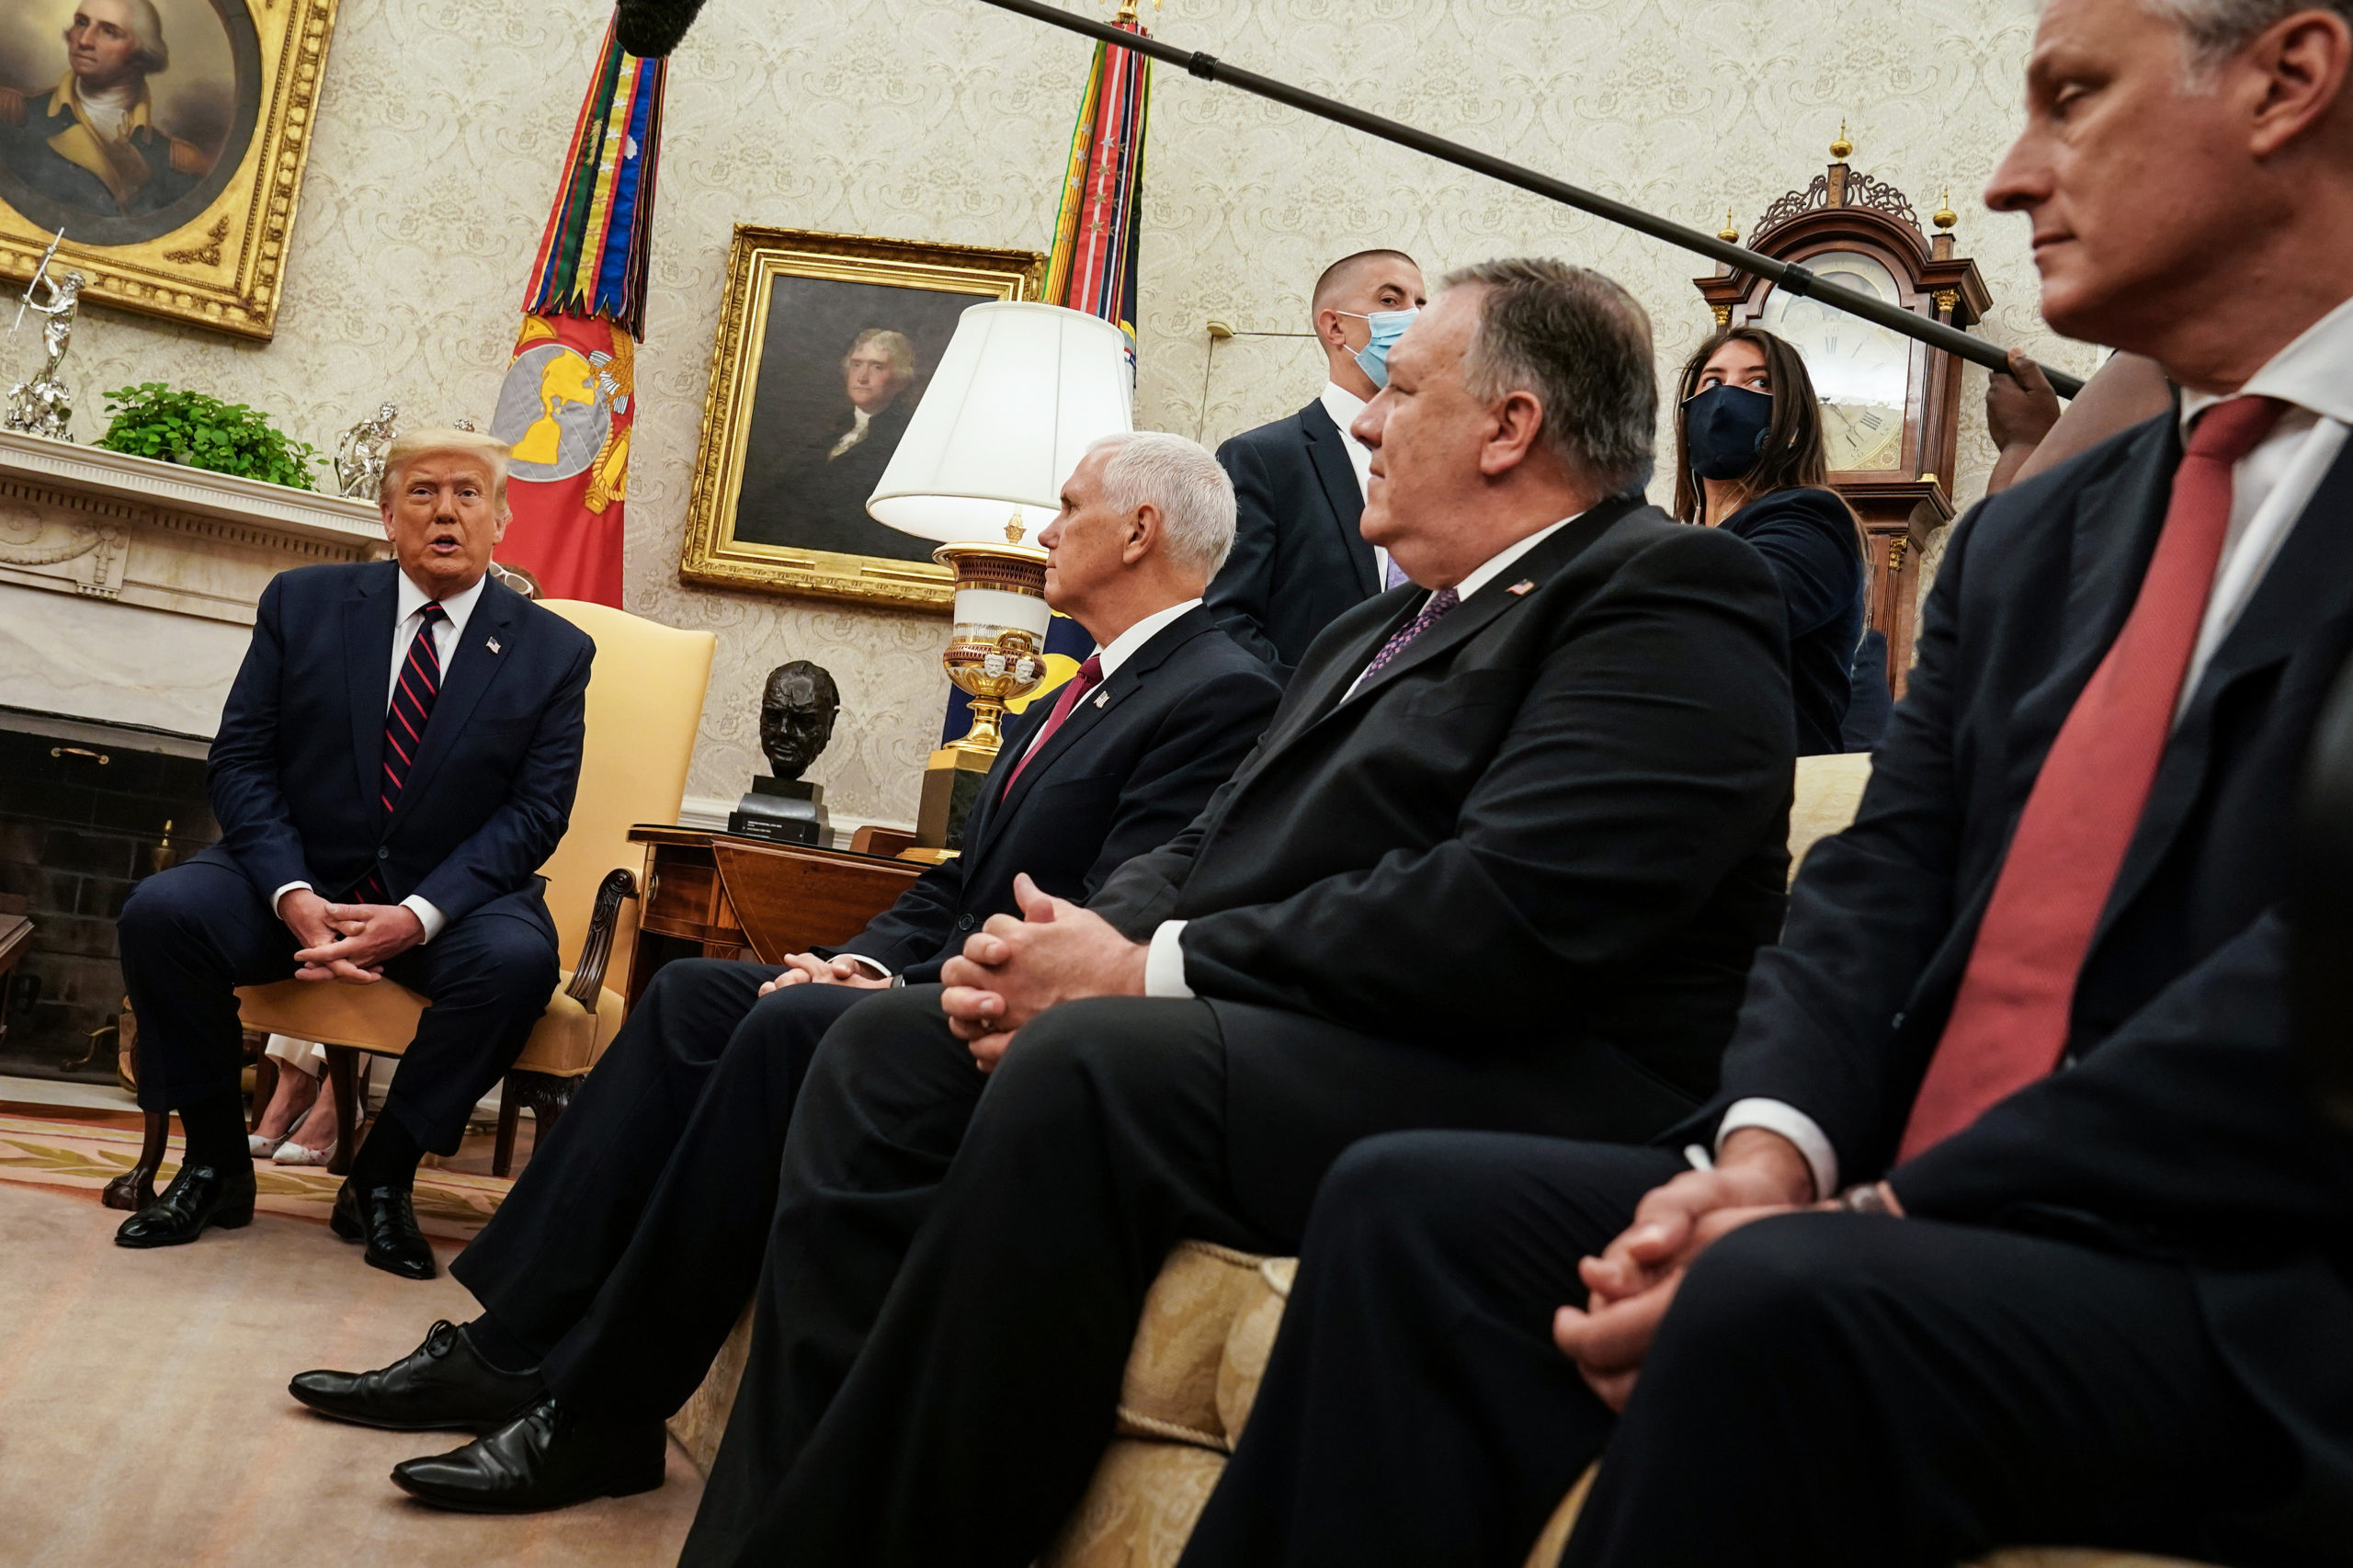 WASHINGTON, DC - AUGUST 20: U.S. President Donald Trump (L) talks to reporters while hosting Iraqi Prime Minister Mustafa Al-Kadhimi (not pictured) and (2nd L-R) Vice President Mike Pence, Secretary of State Mike Pompeo and National Security Advisor Robert O'Brien in the Oval Office at the White House August 20, 2020 in Washington, DC. One day before the meeting, Trump announced that he will allow UN Security Council sanctions to 'snap back' into place against Iran, one of Iraq's neighbors and closest allies, even as U.S. troop levels in Iraq and Syria would most likely shrink in the coming months. (Photo by Anna Moneymaker-Pool/Getty Images)